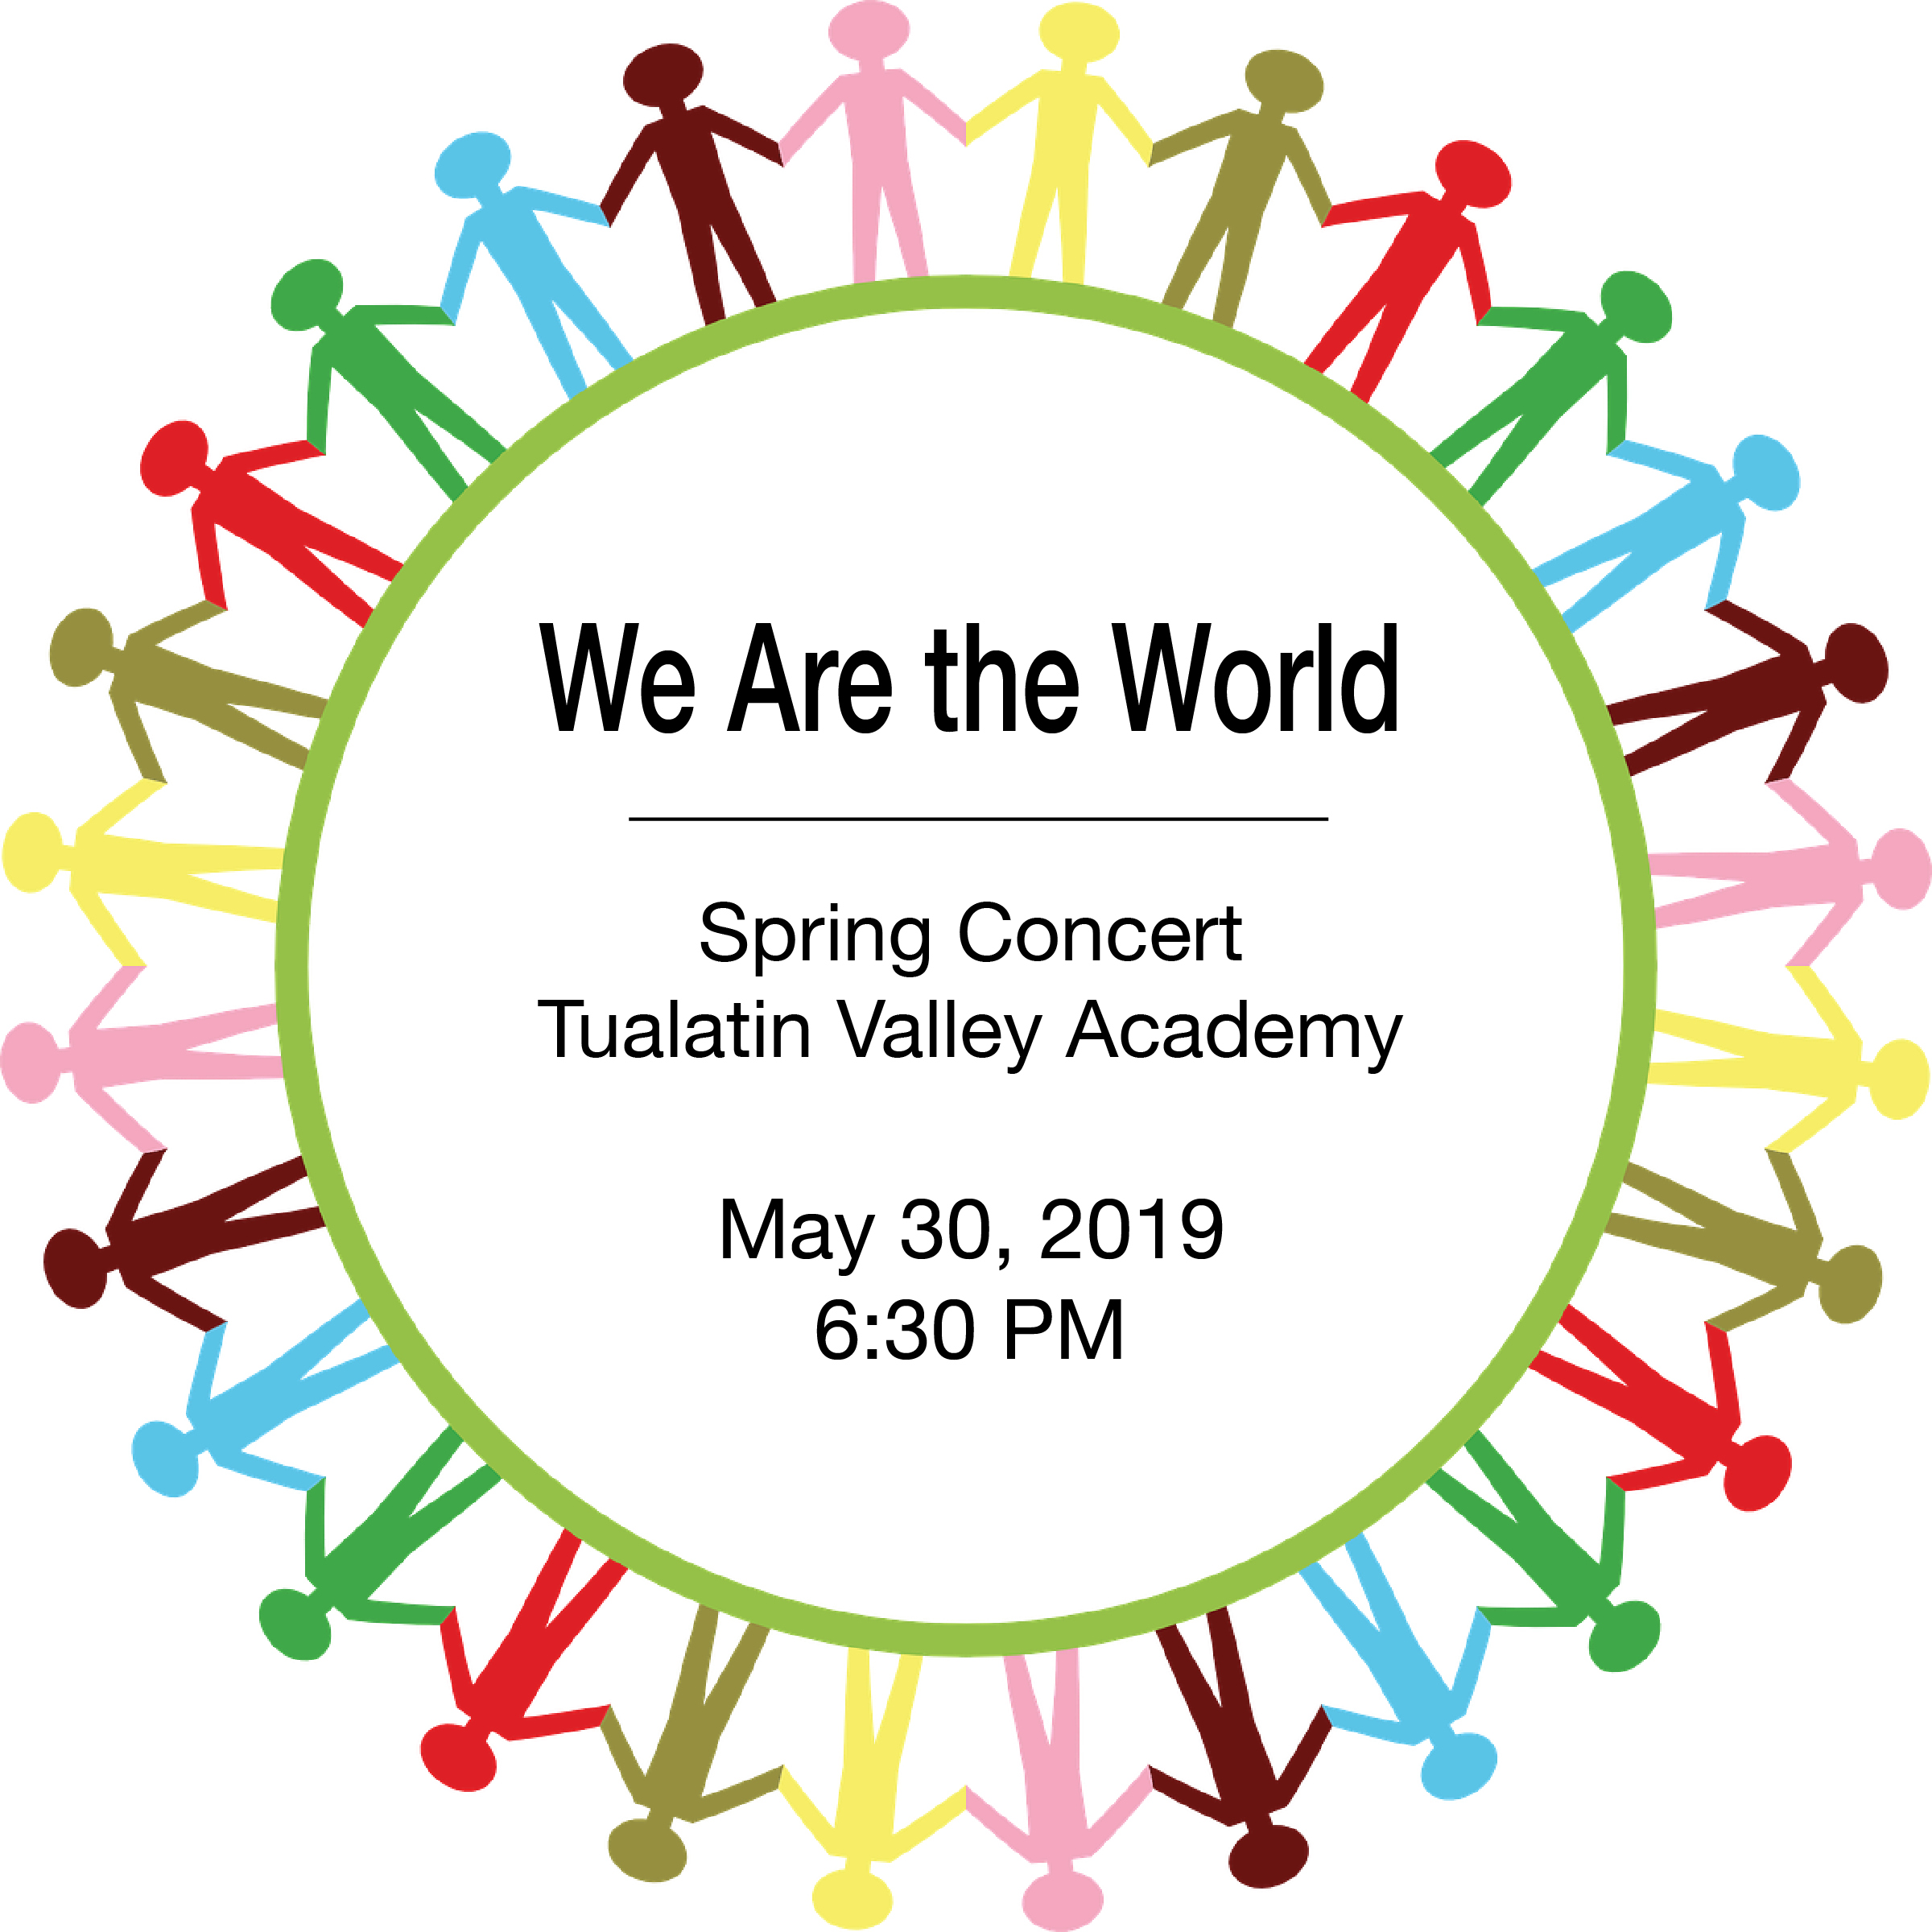 we are the world concert 2019.jpg